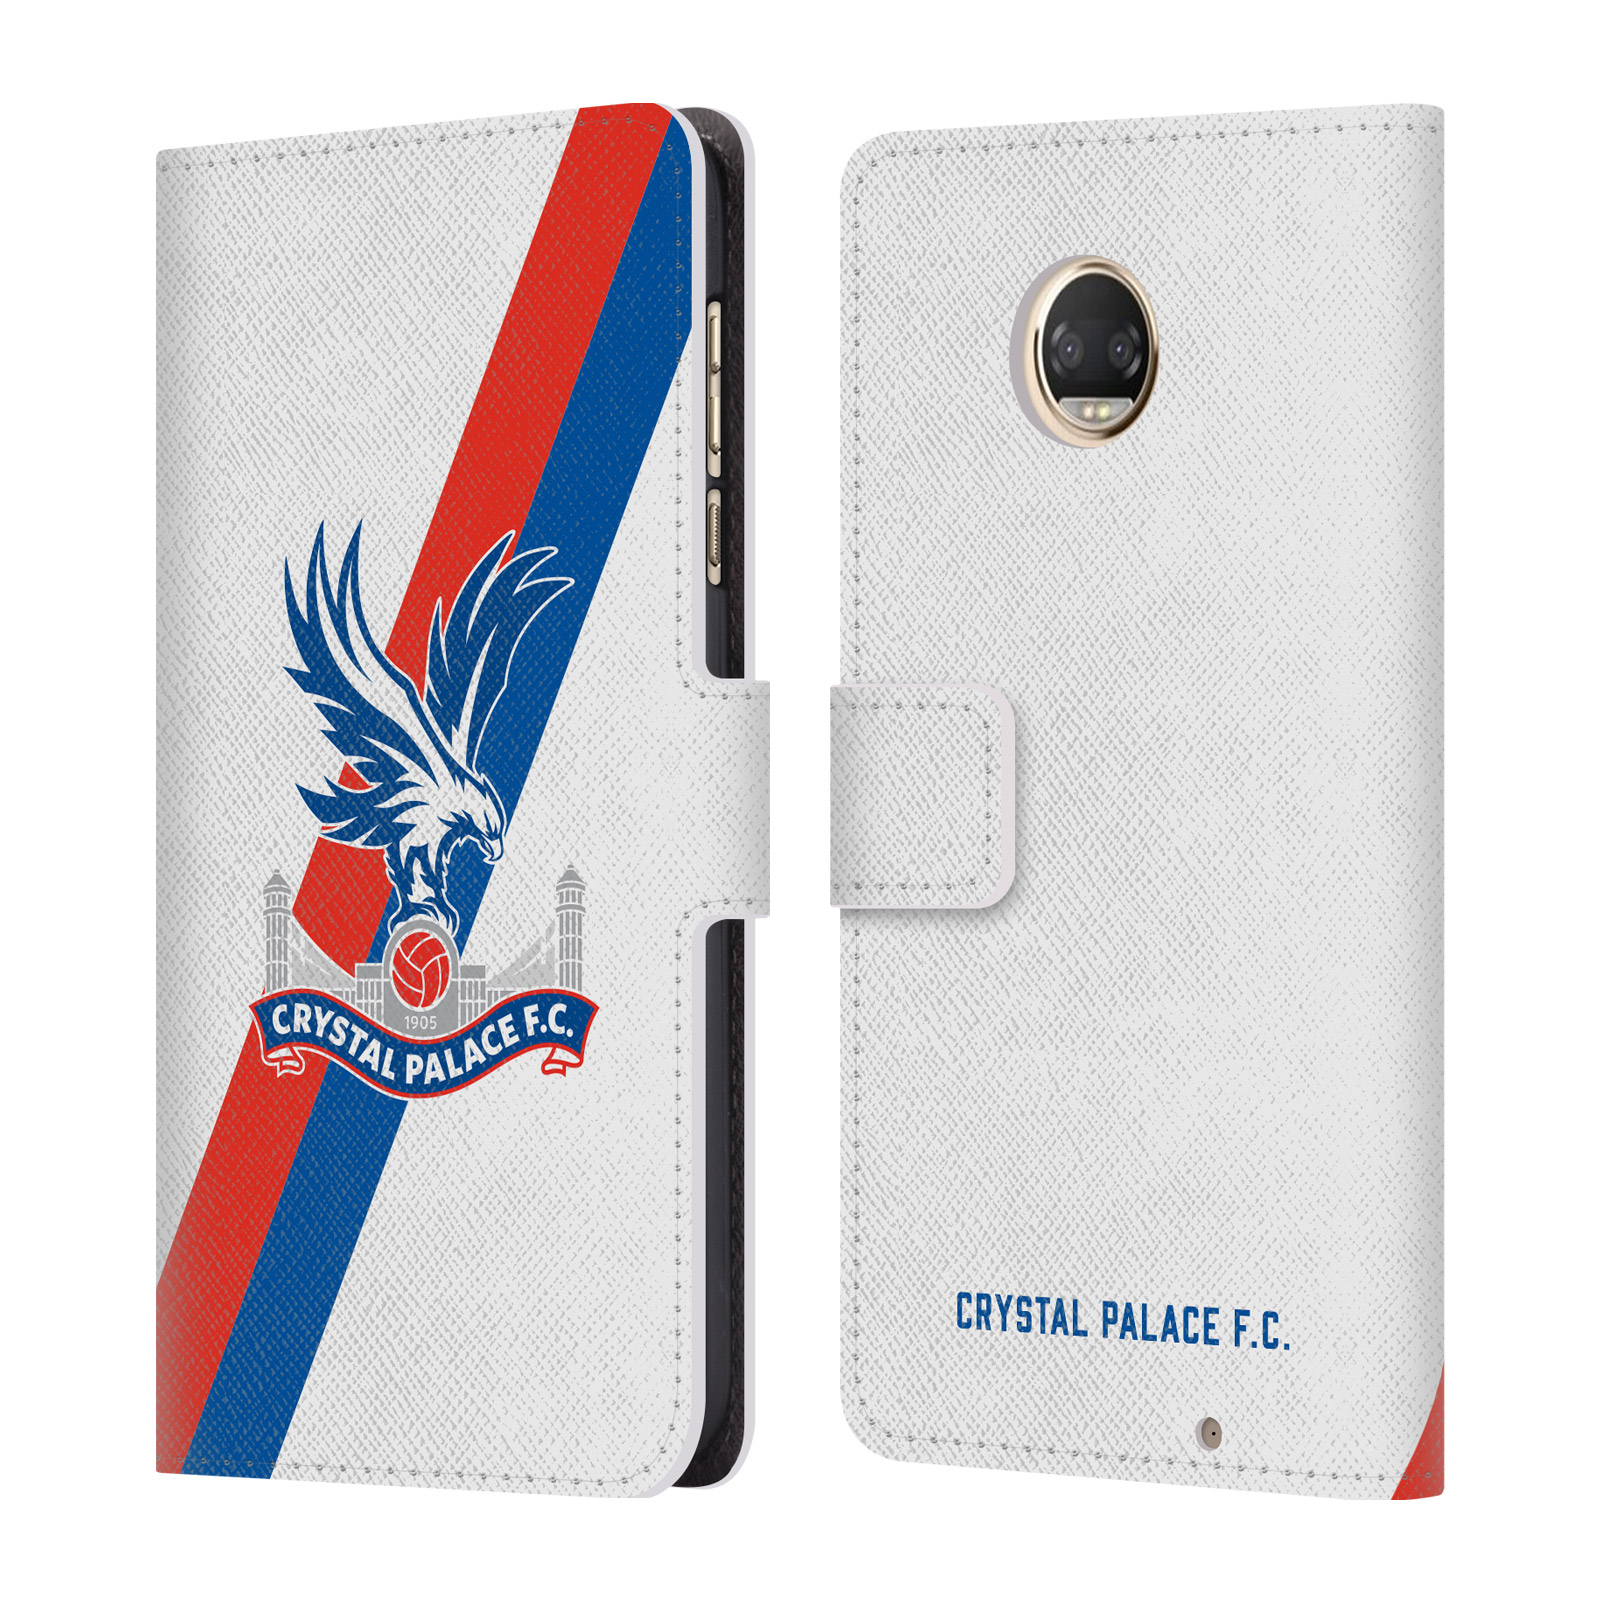 CRYSTAL-PALACE-FC-2018-19-PLAYERS-KIT-LEATHER-BOOK-CASE-FOR-MOTOROLA-PHONES